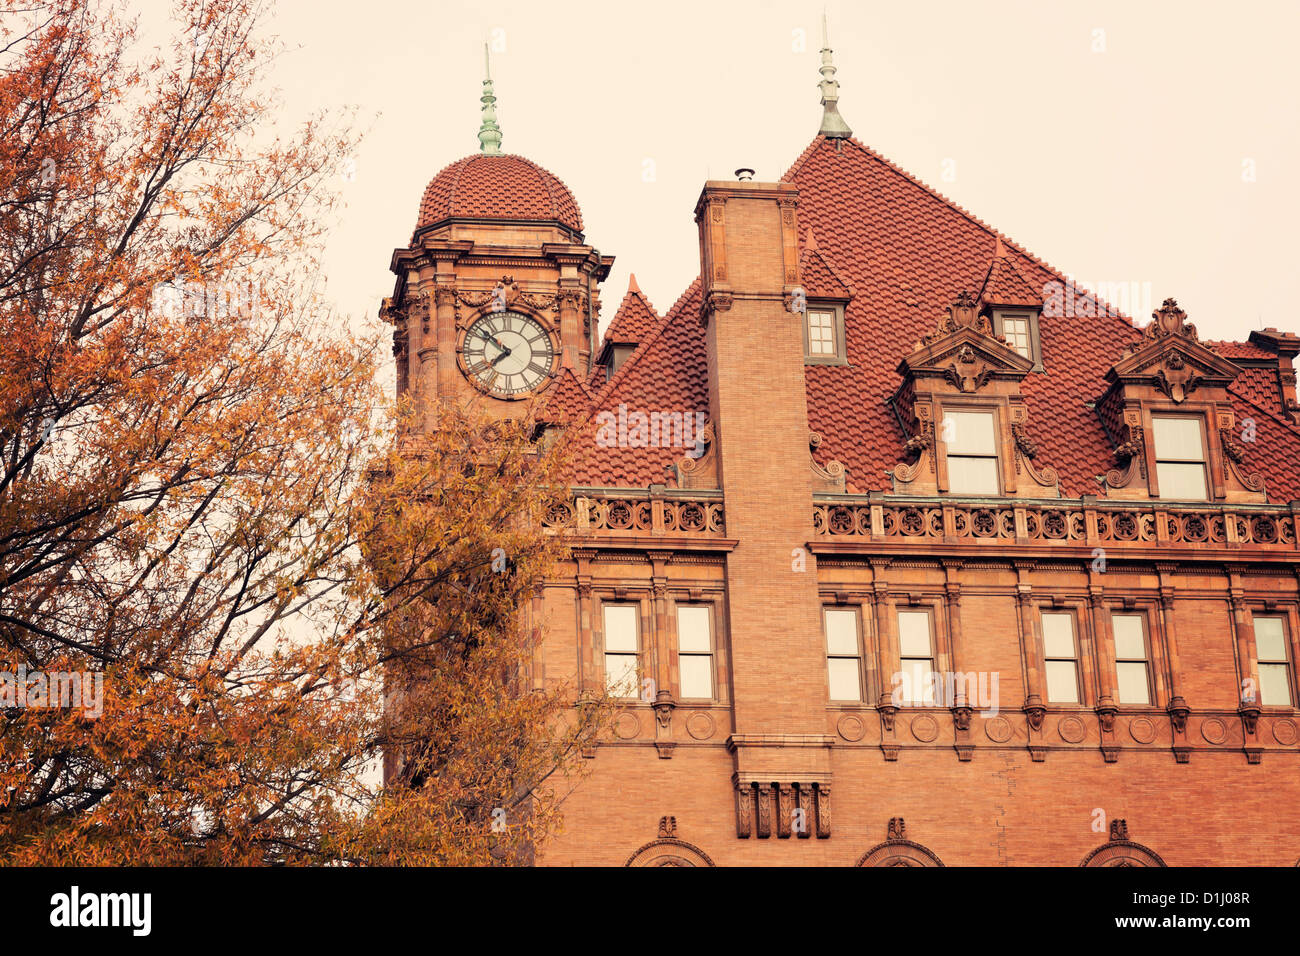 Old Main Street Train Station Clock Tower in Richmond - Stock Image